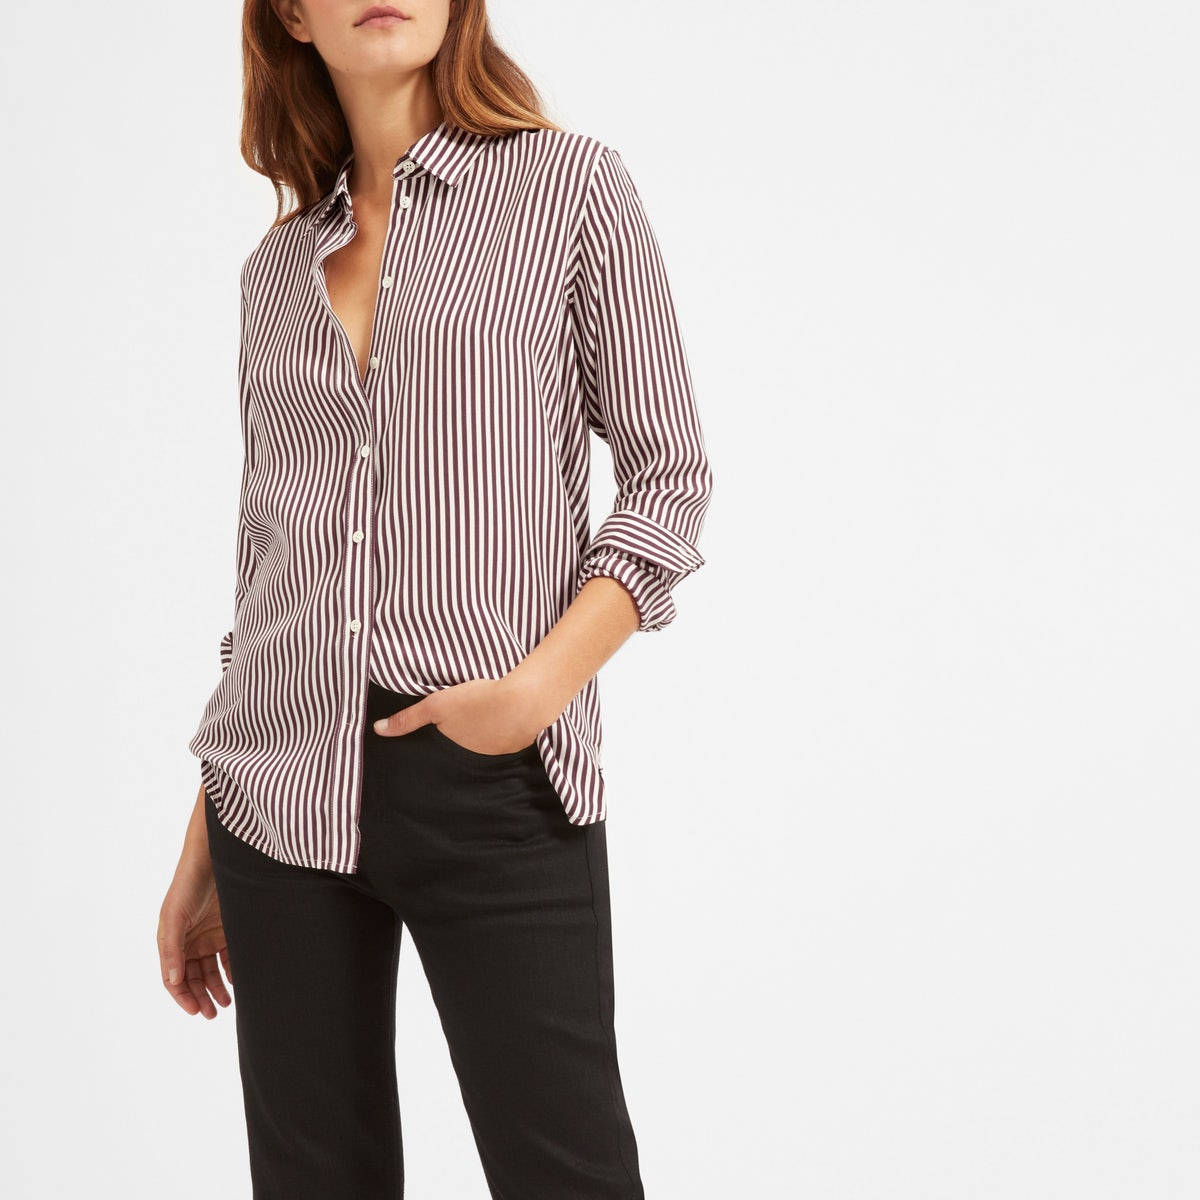 everlane silk top1